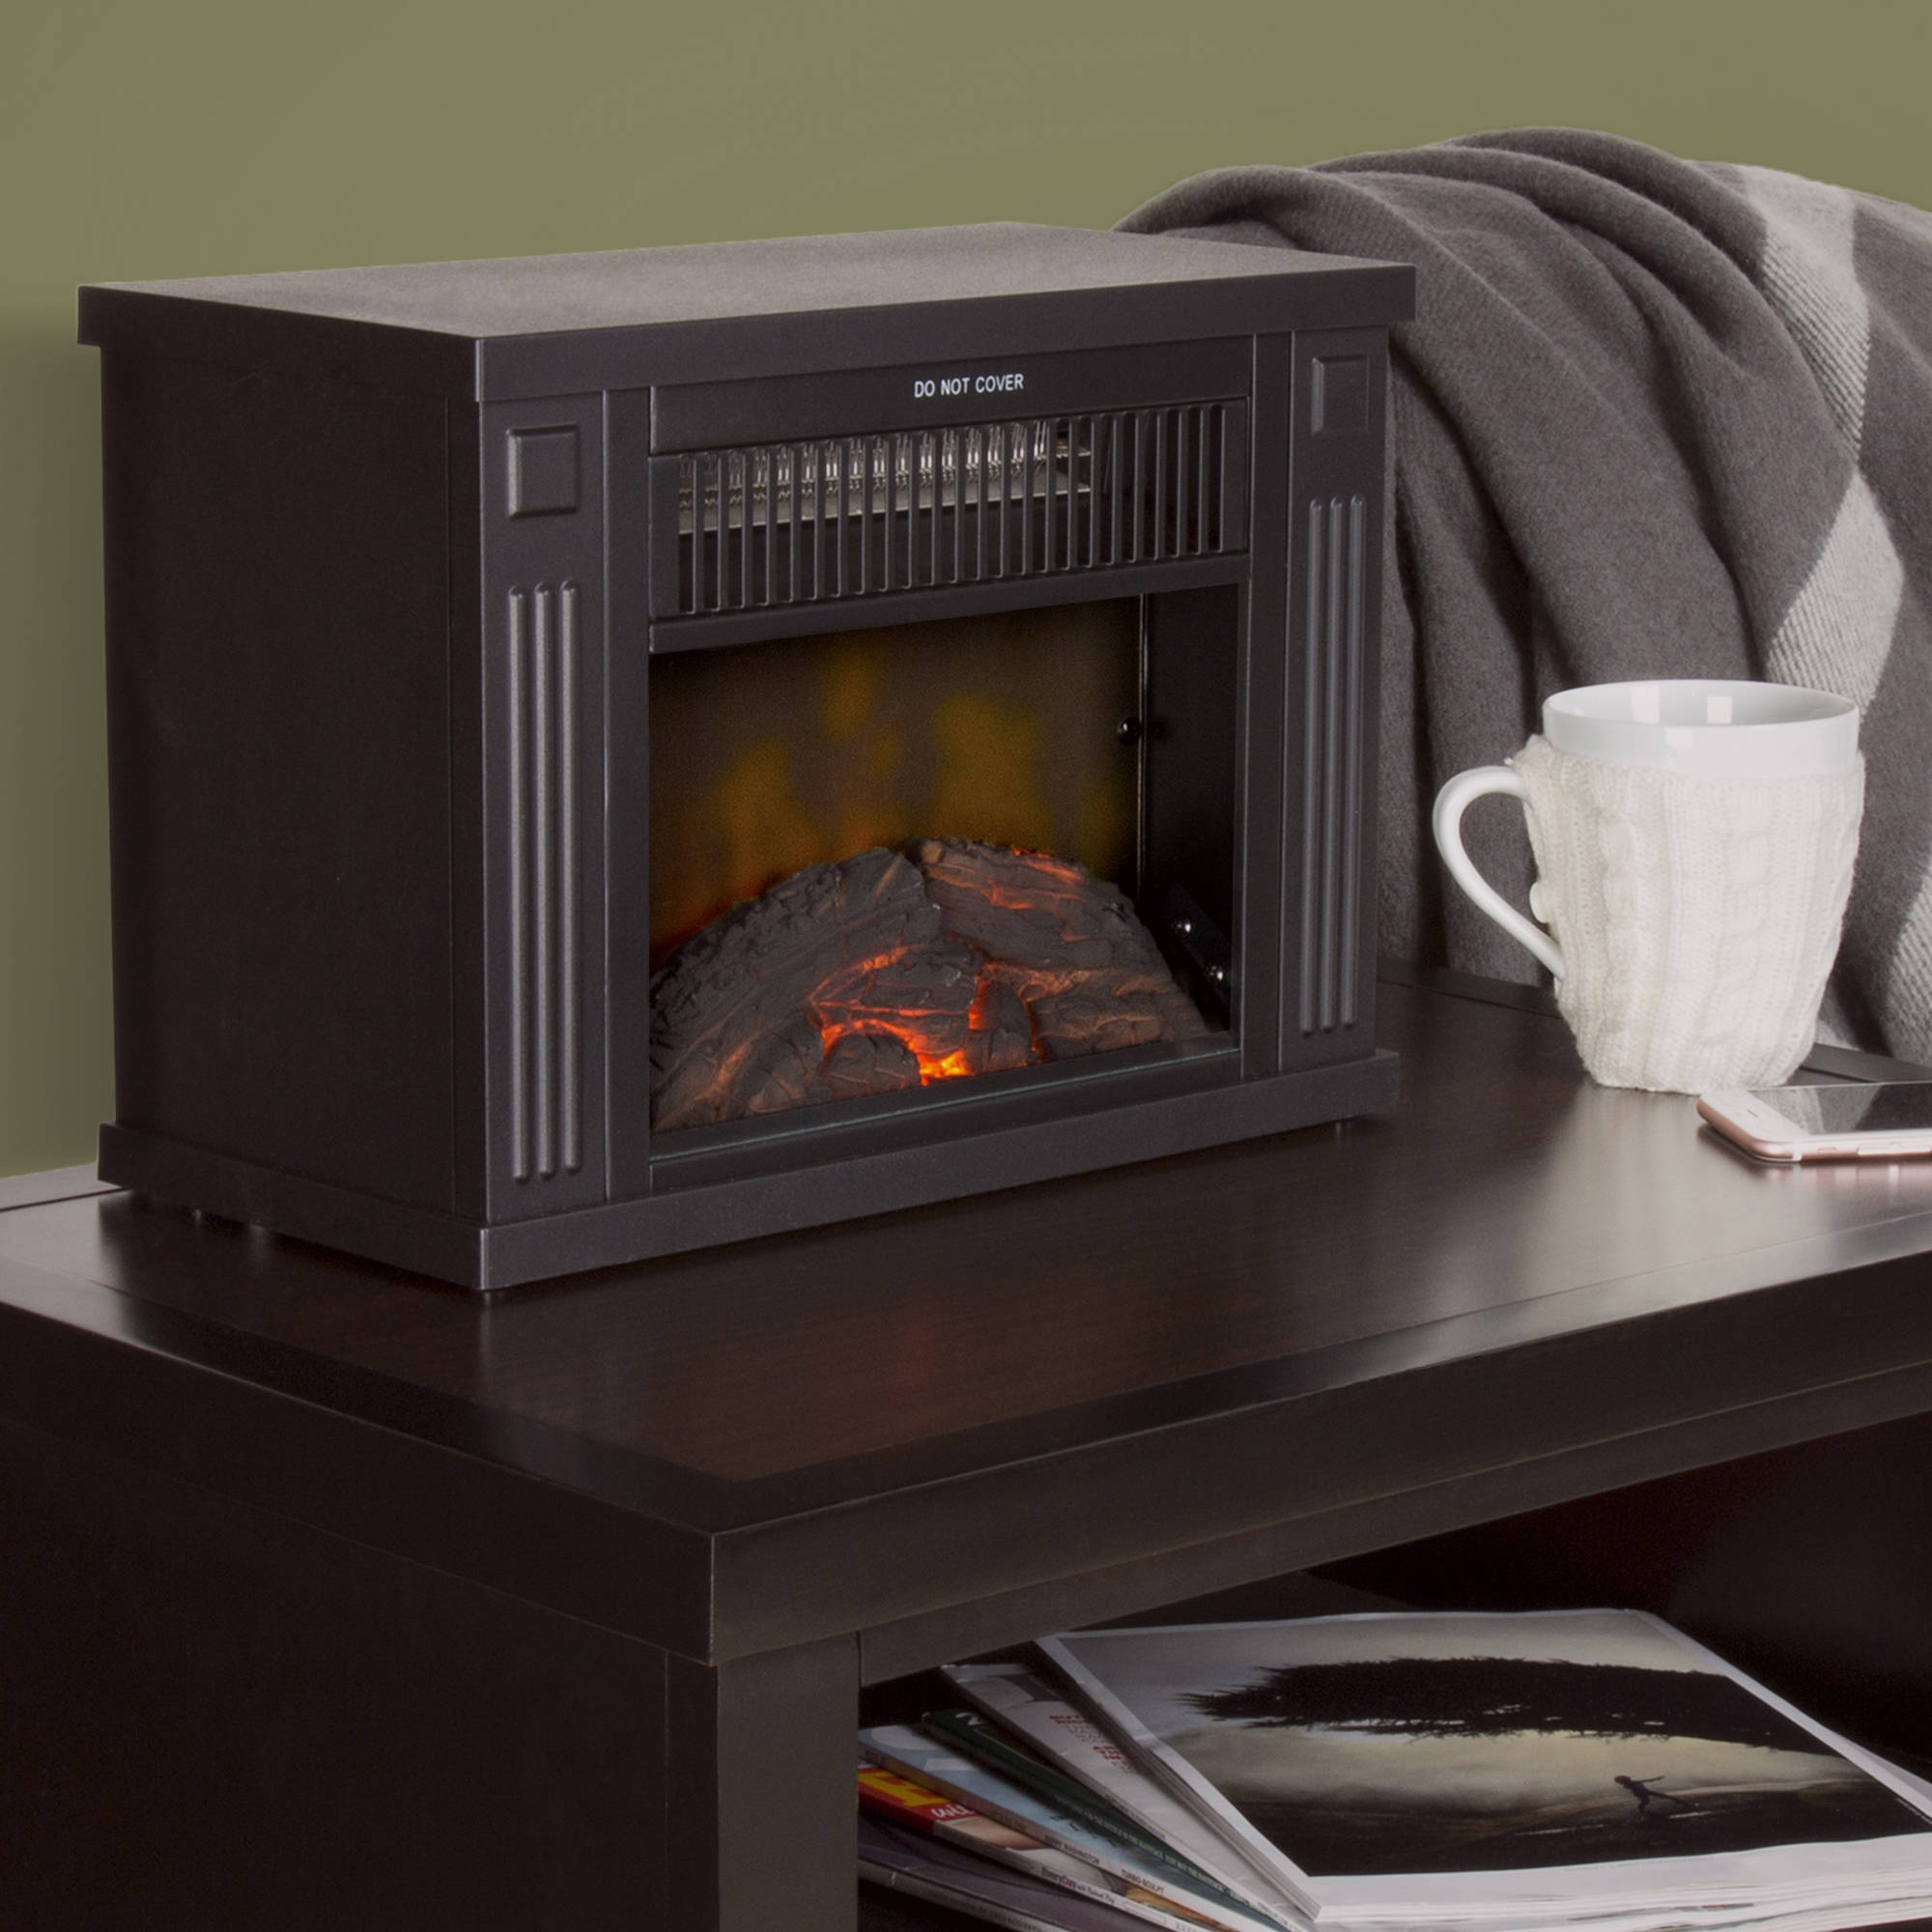 fi a store electric fireplace review tepperman s firplace write samuel